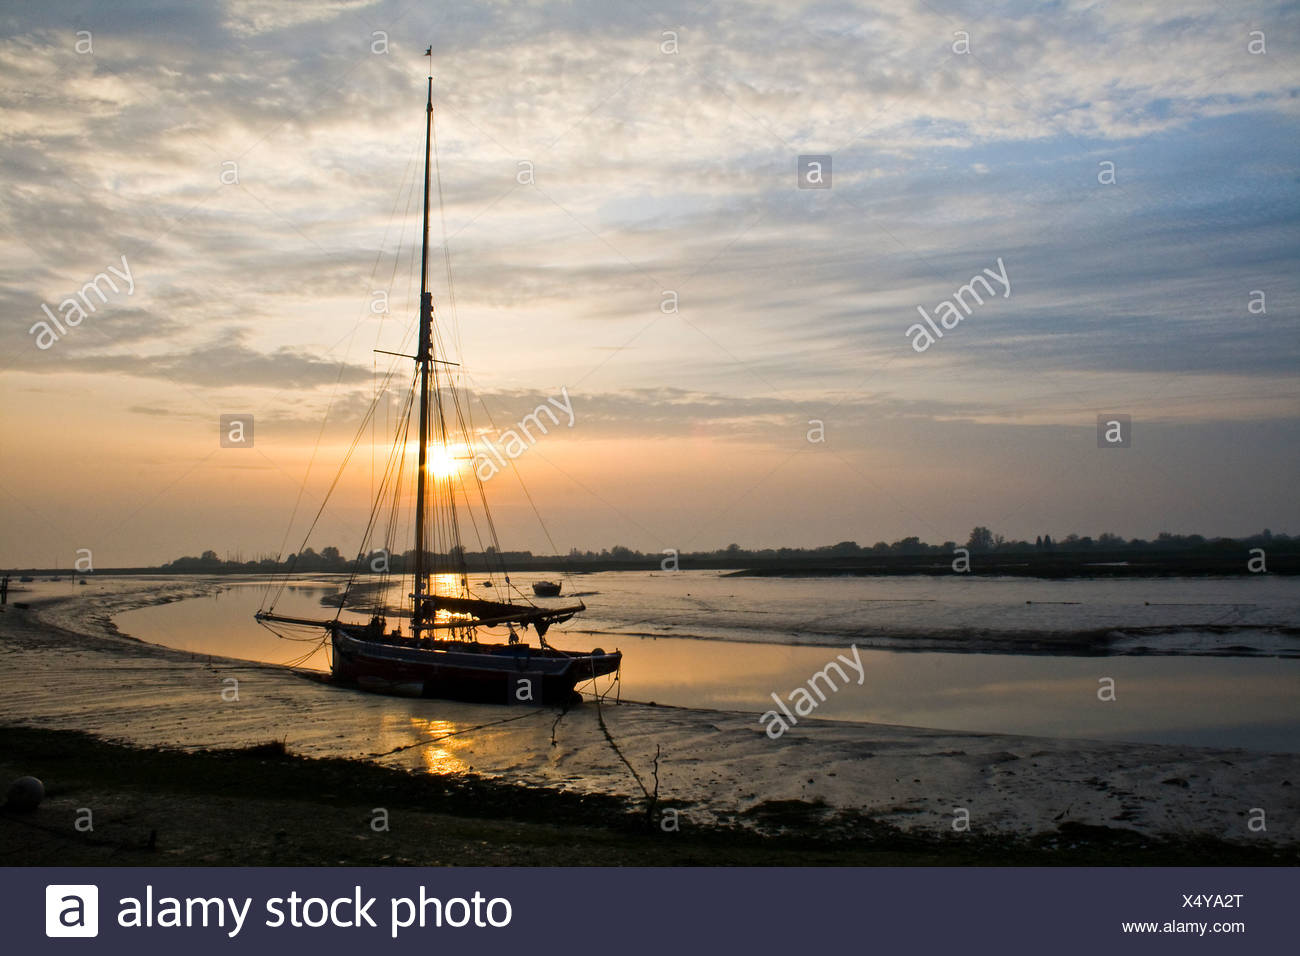 Oyster smack silhouetted against the early morning sun at Maldon, Essex. - Stock Image